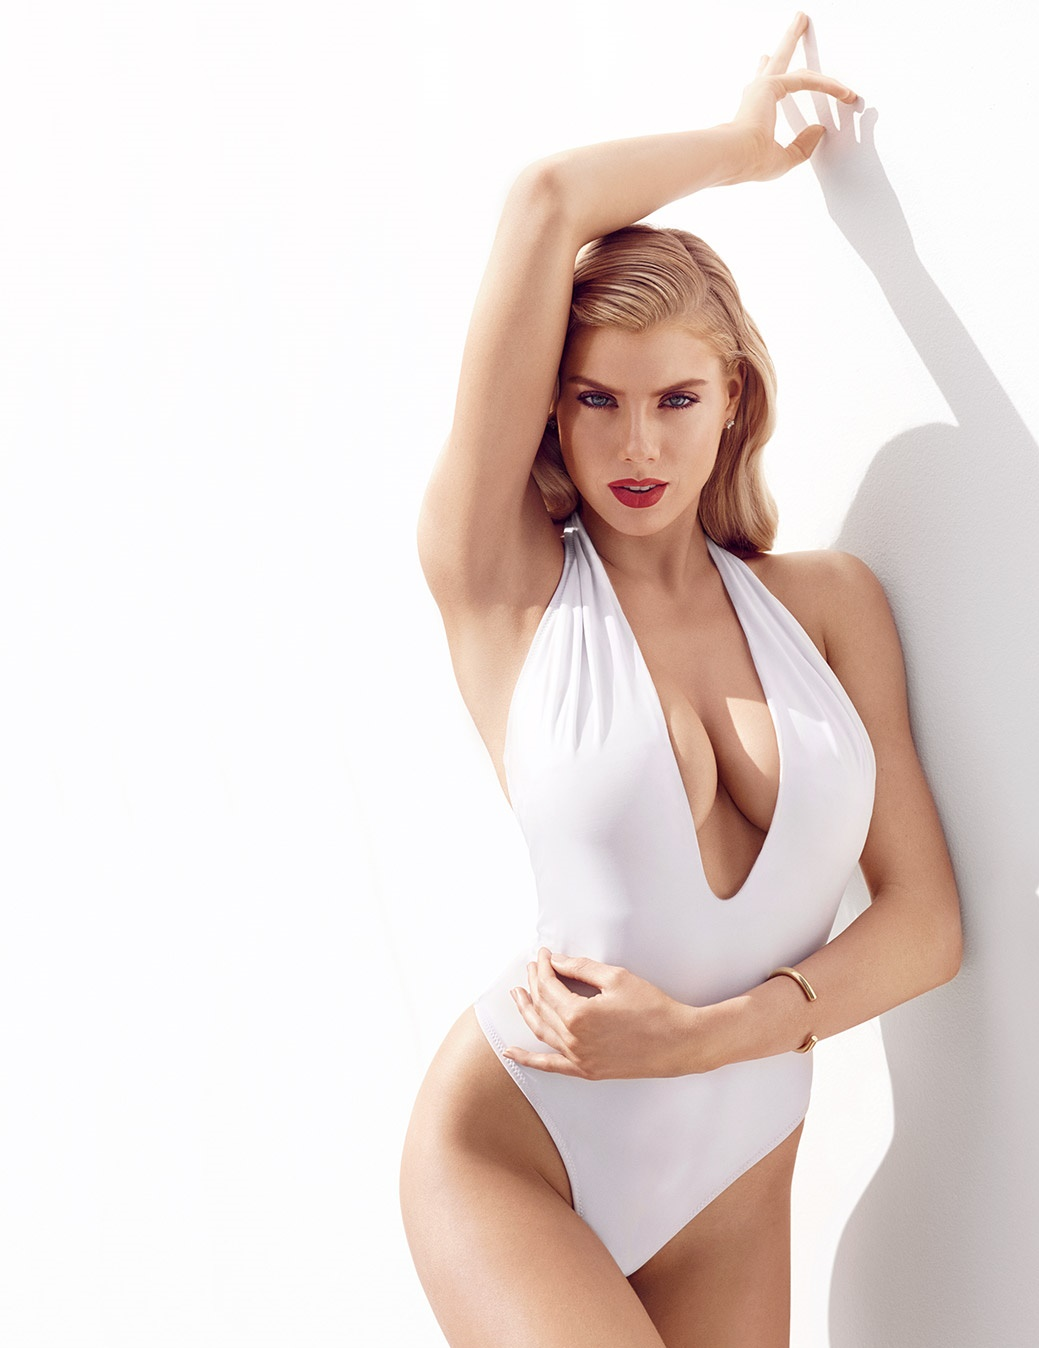 Charlotte McKinney Hot Pics, Sexy Near-Nude Images